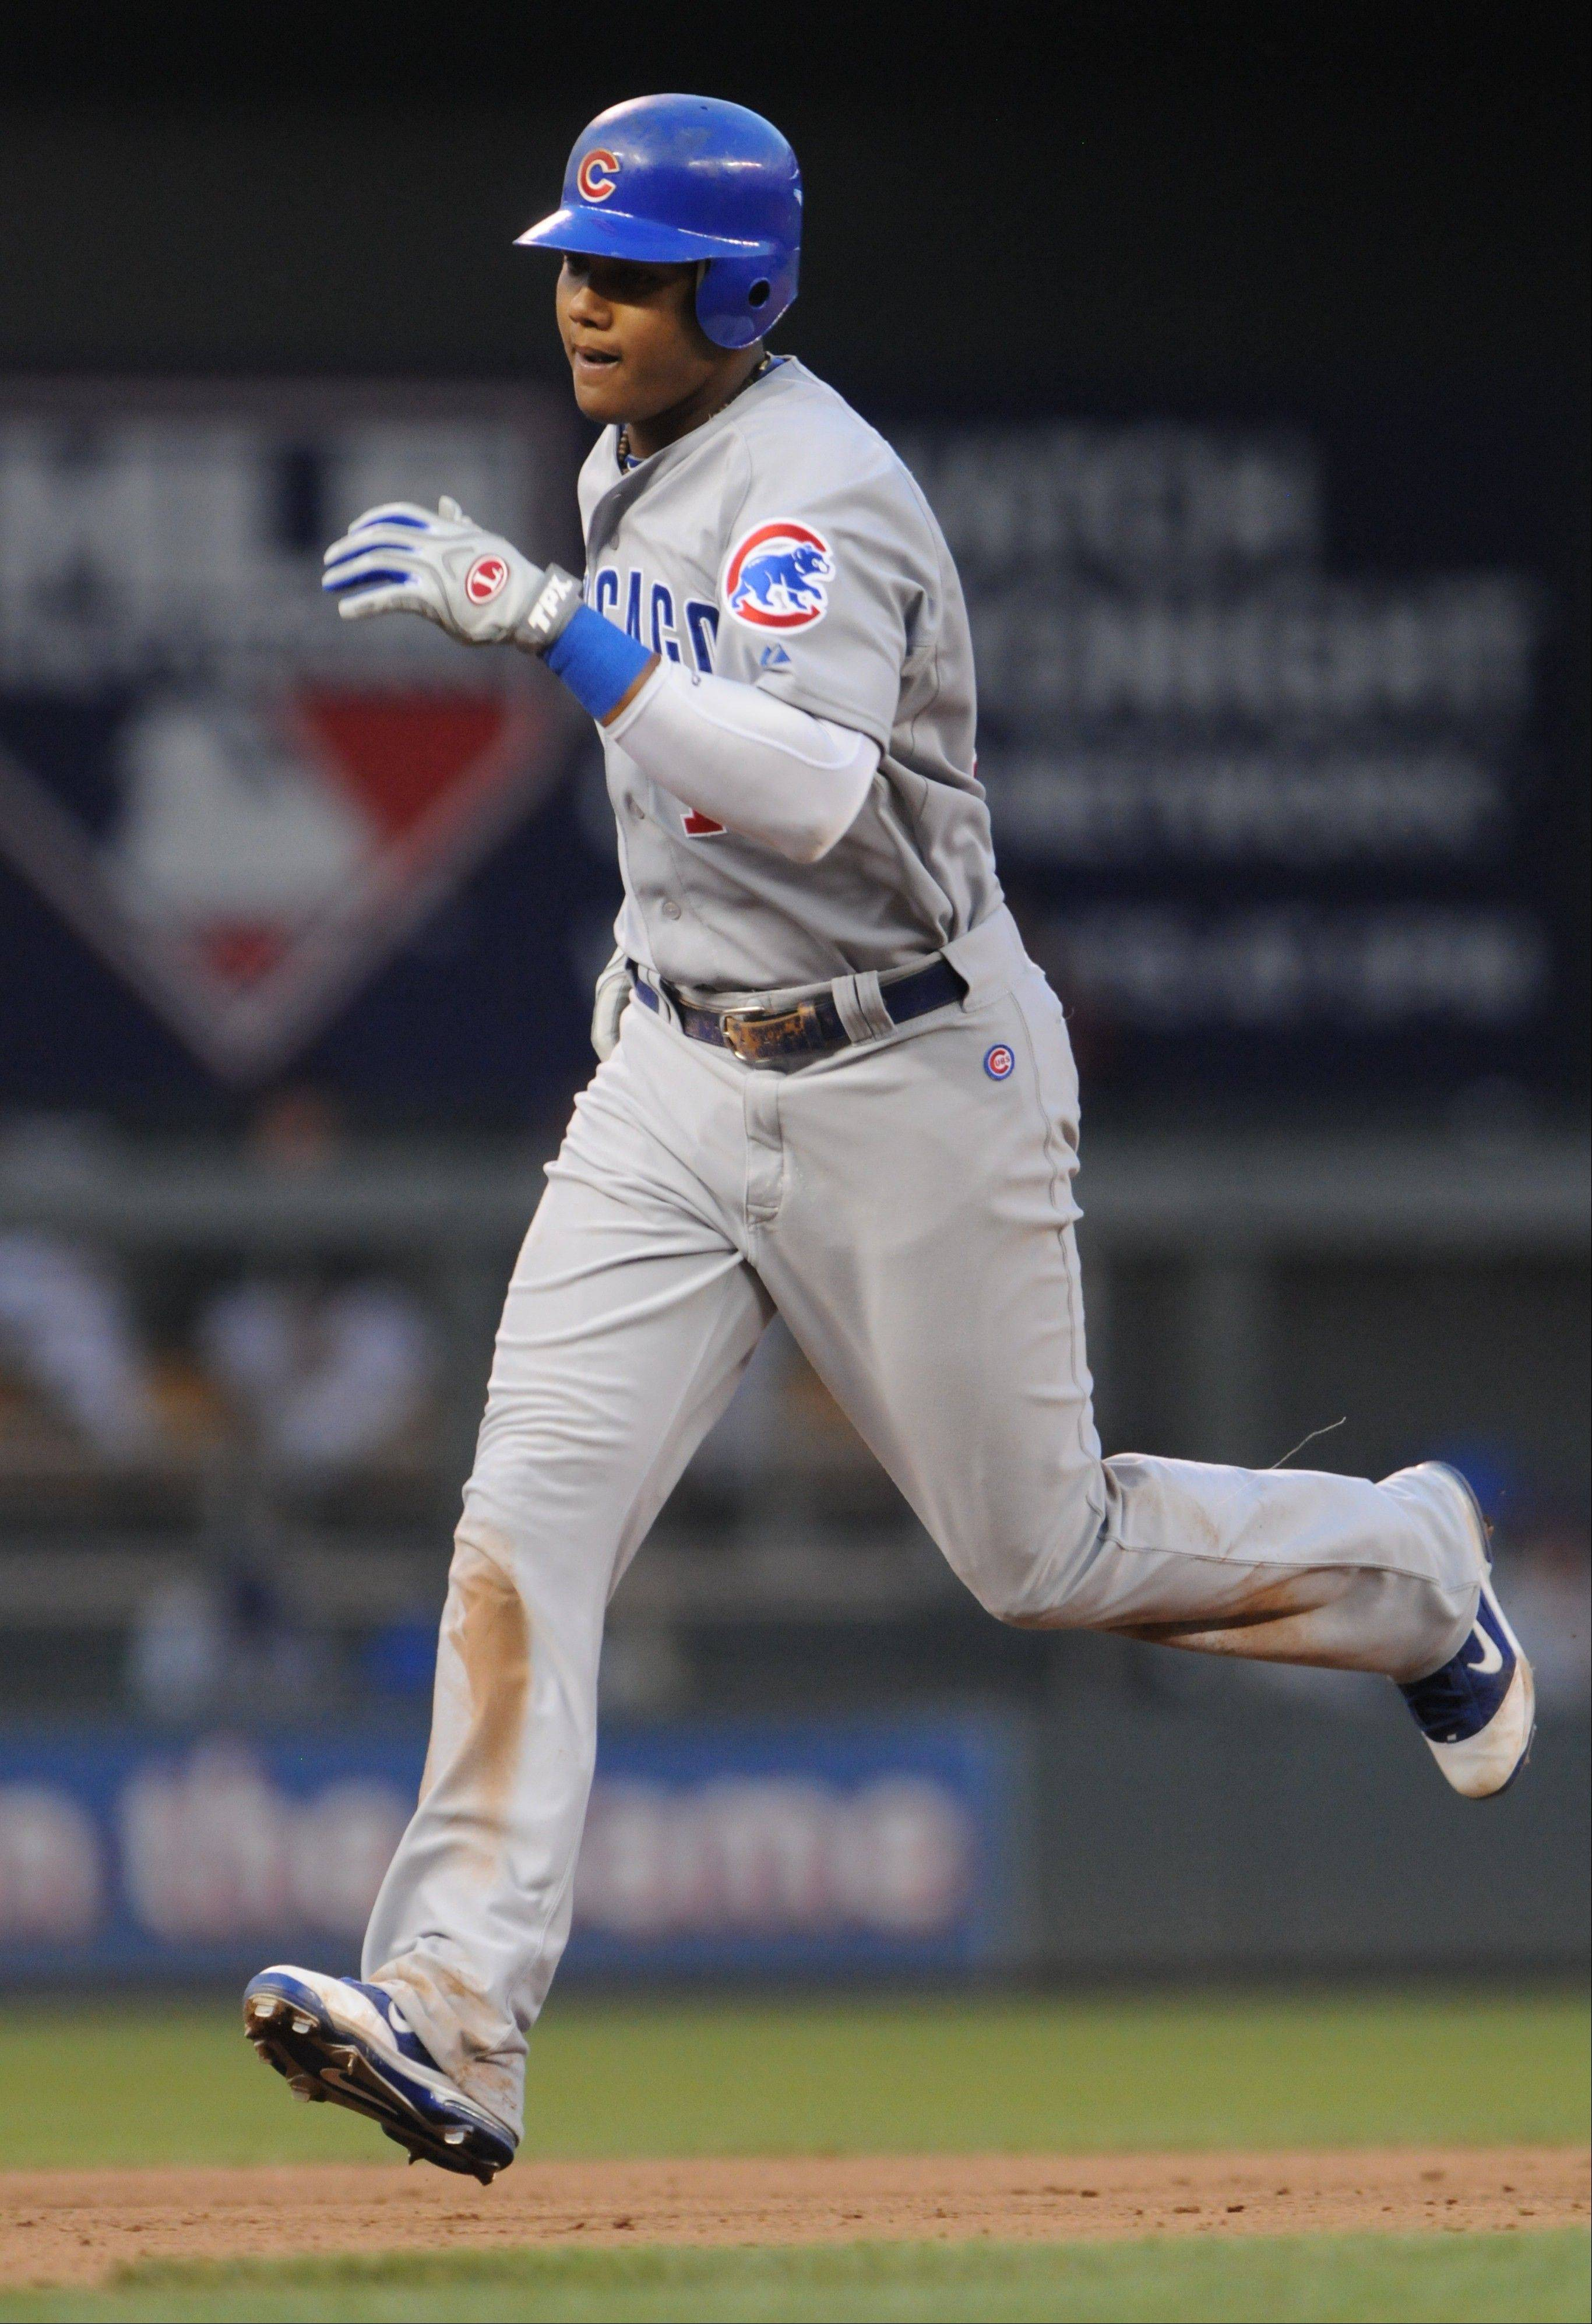 The development of Cubs shortstop Starlin Castro as a major-leaguer continues to be a process.